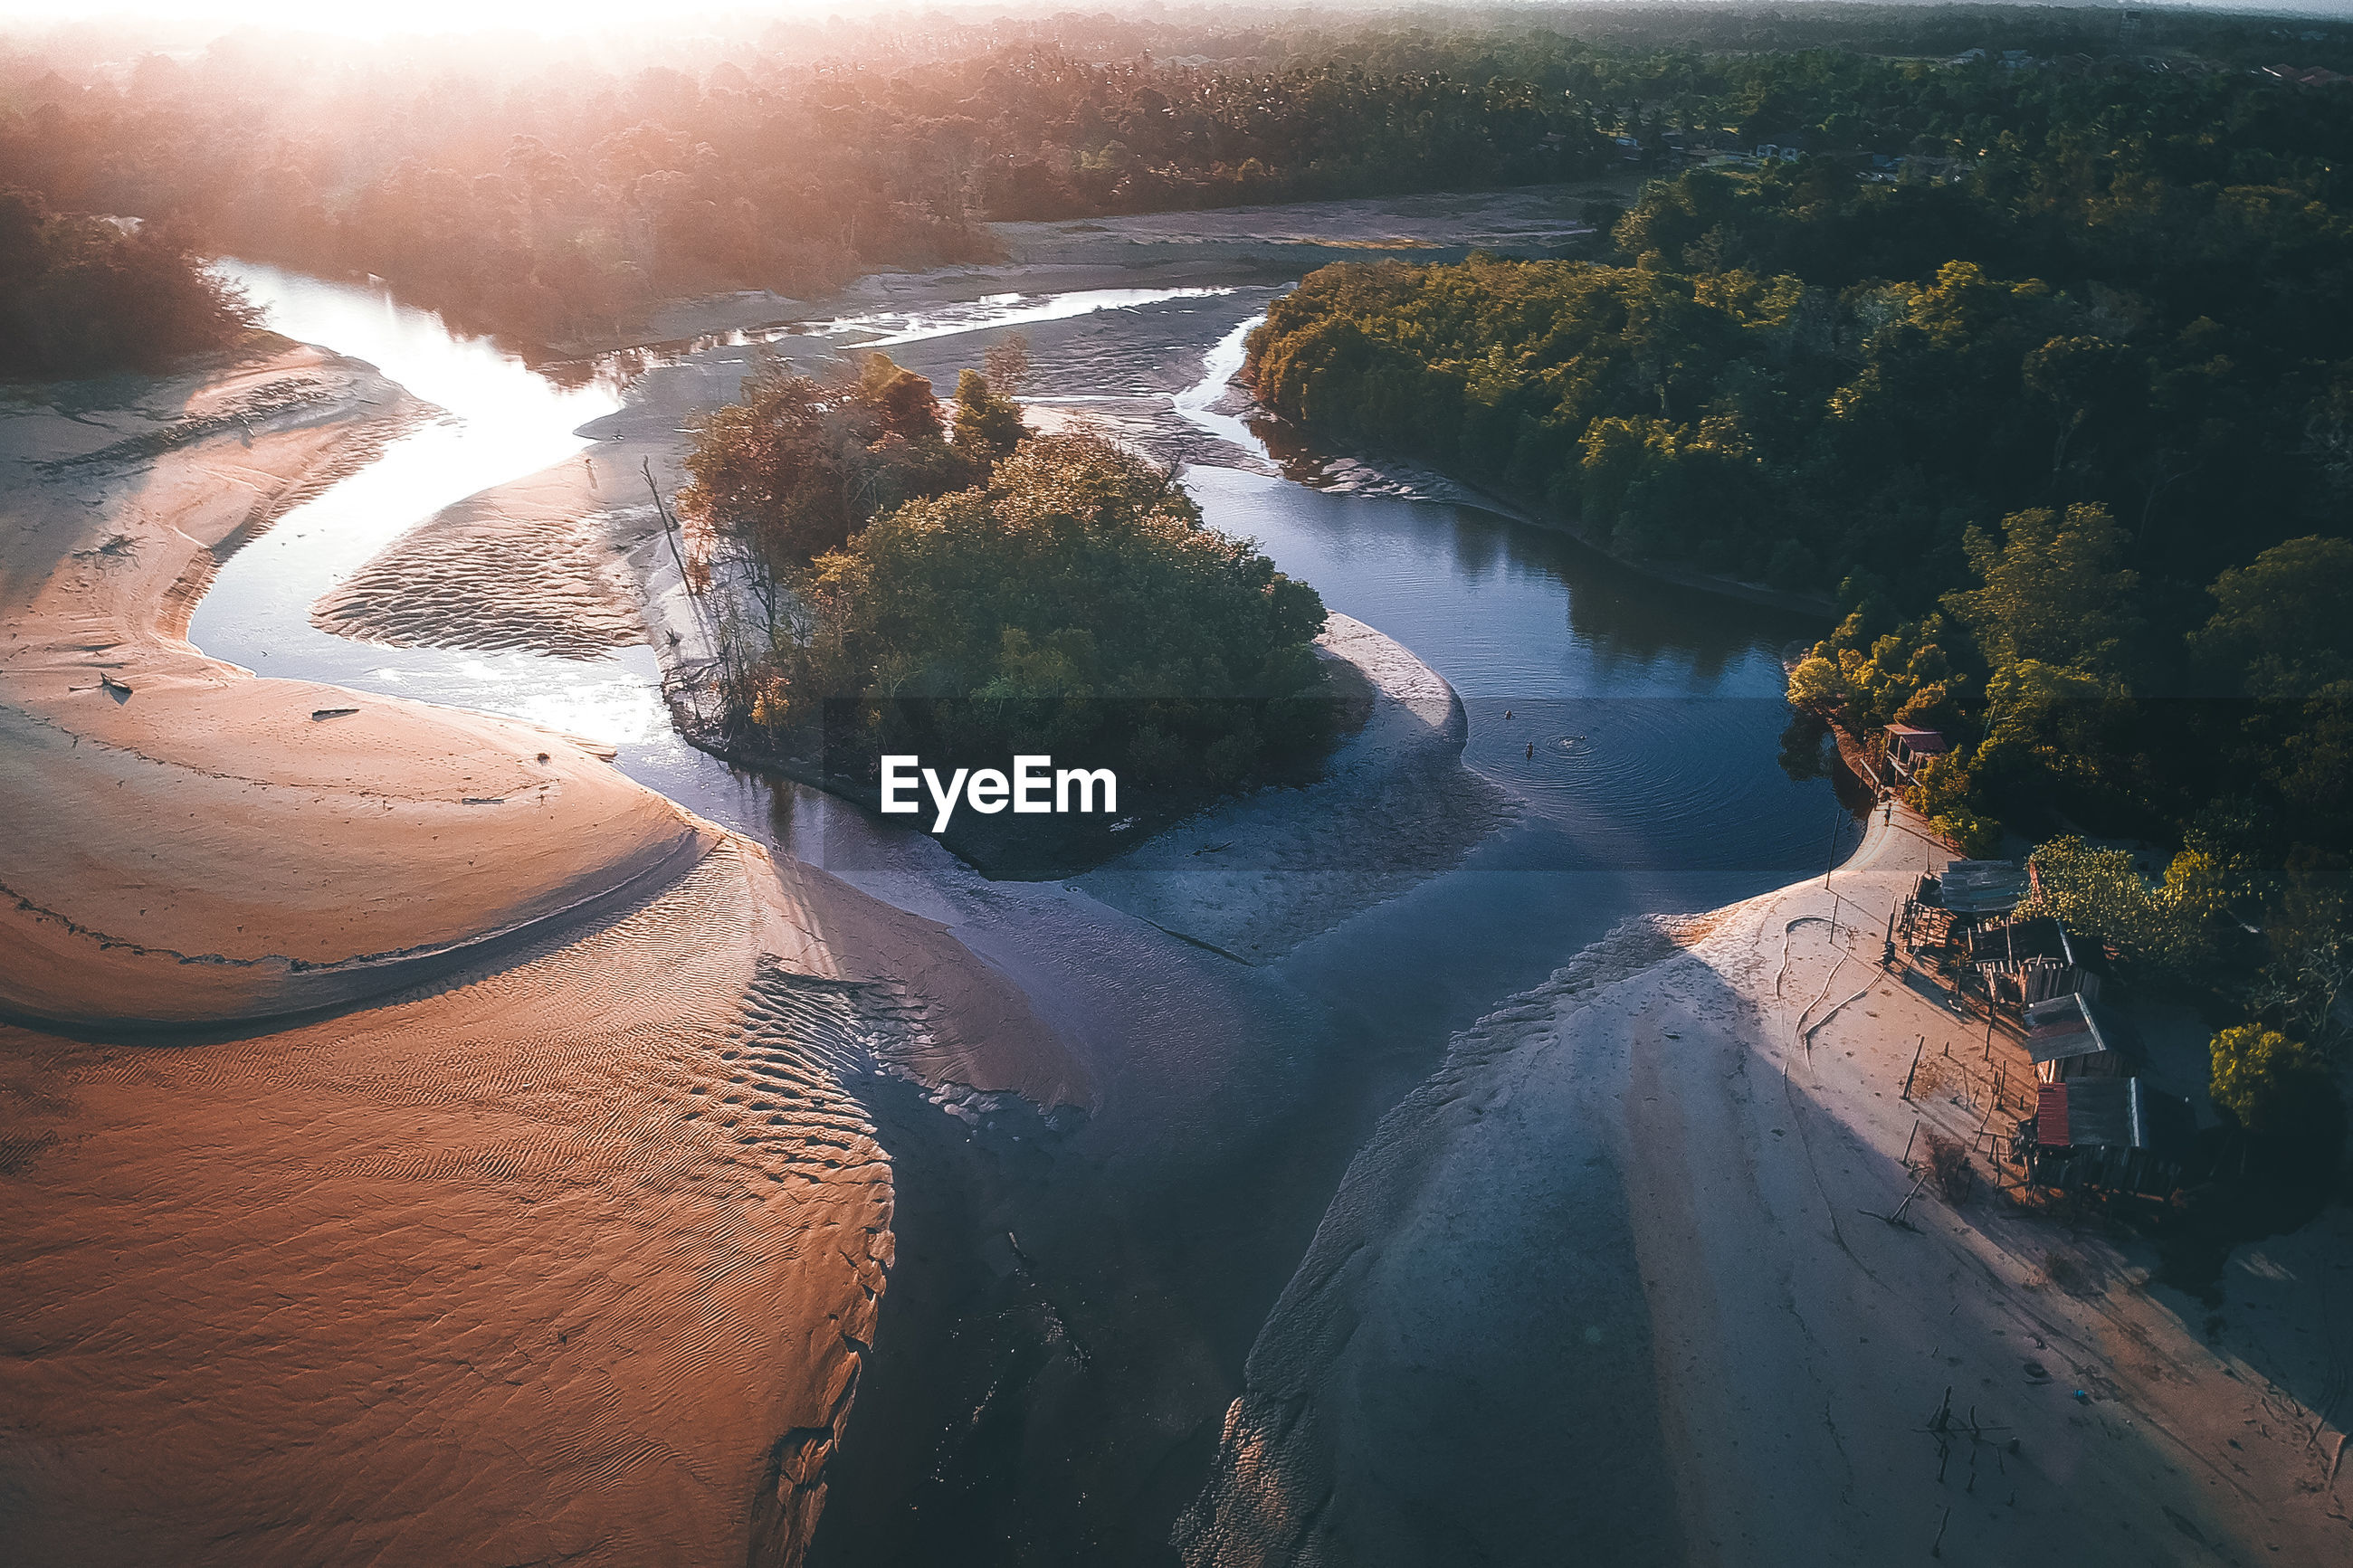 HIGH ANGLE VIEW OF RIVER BY TREES